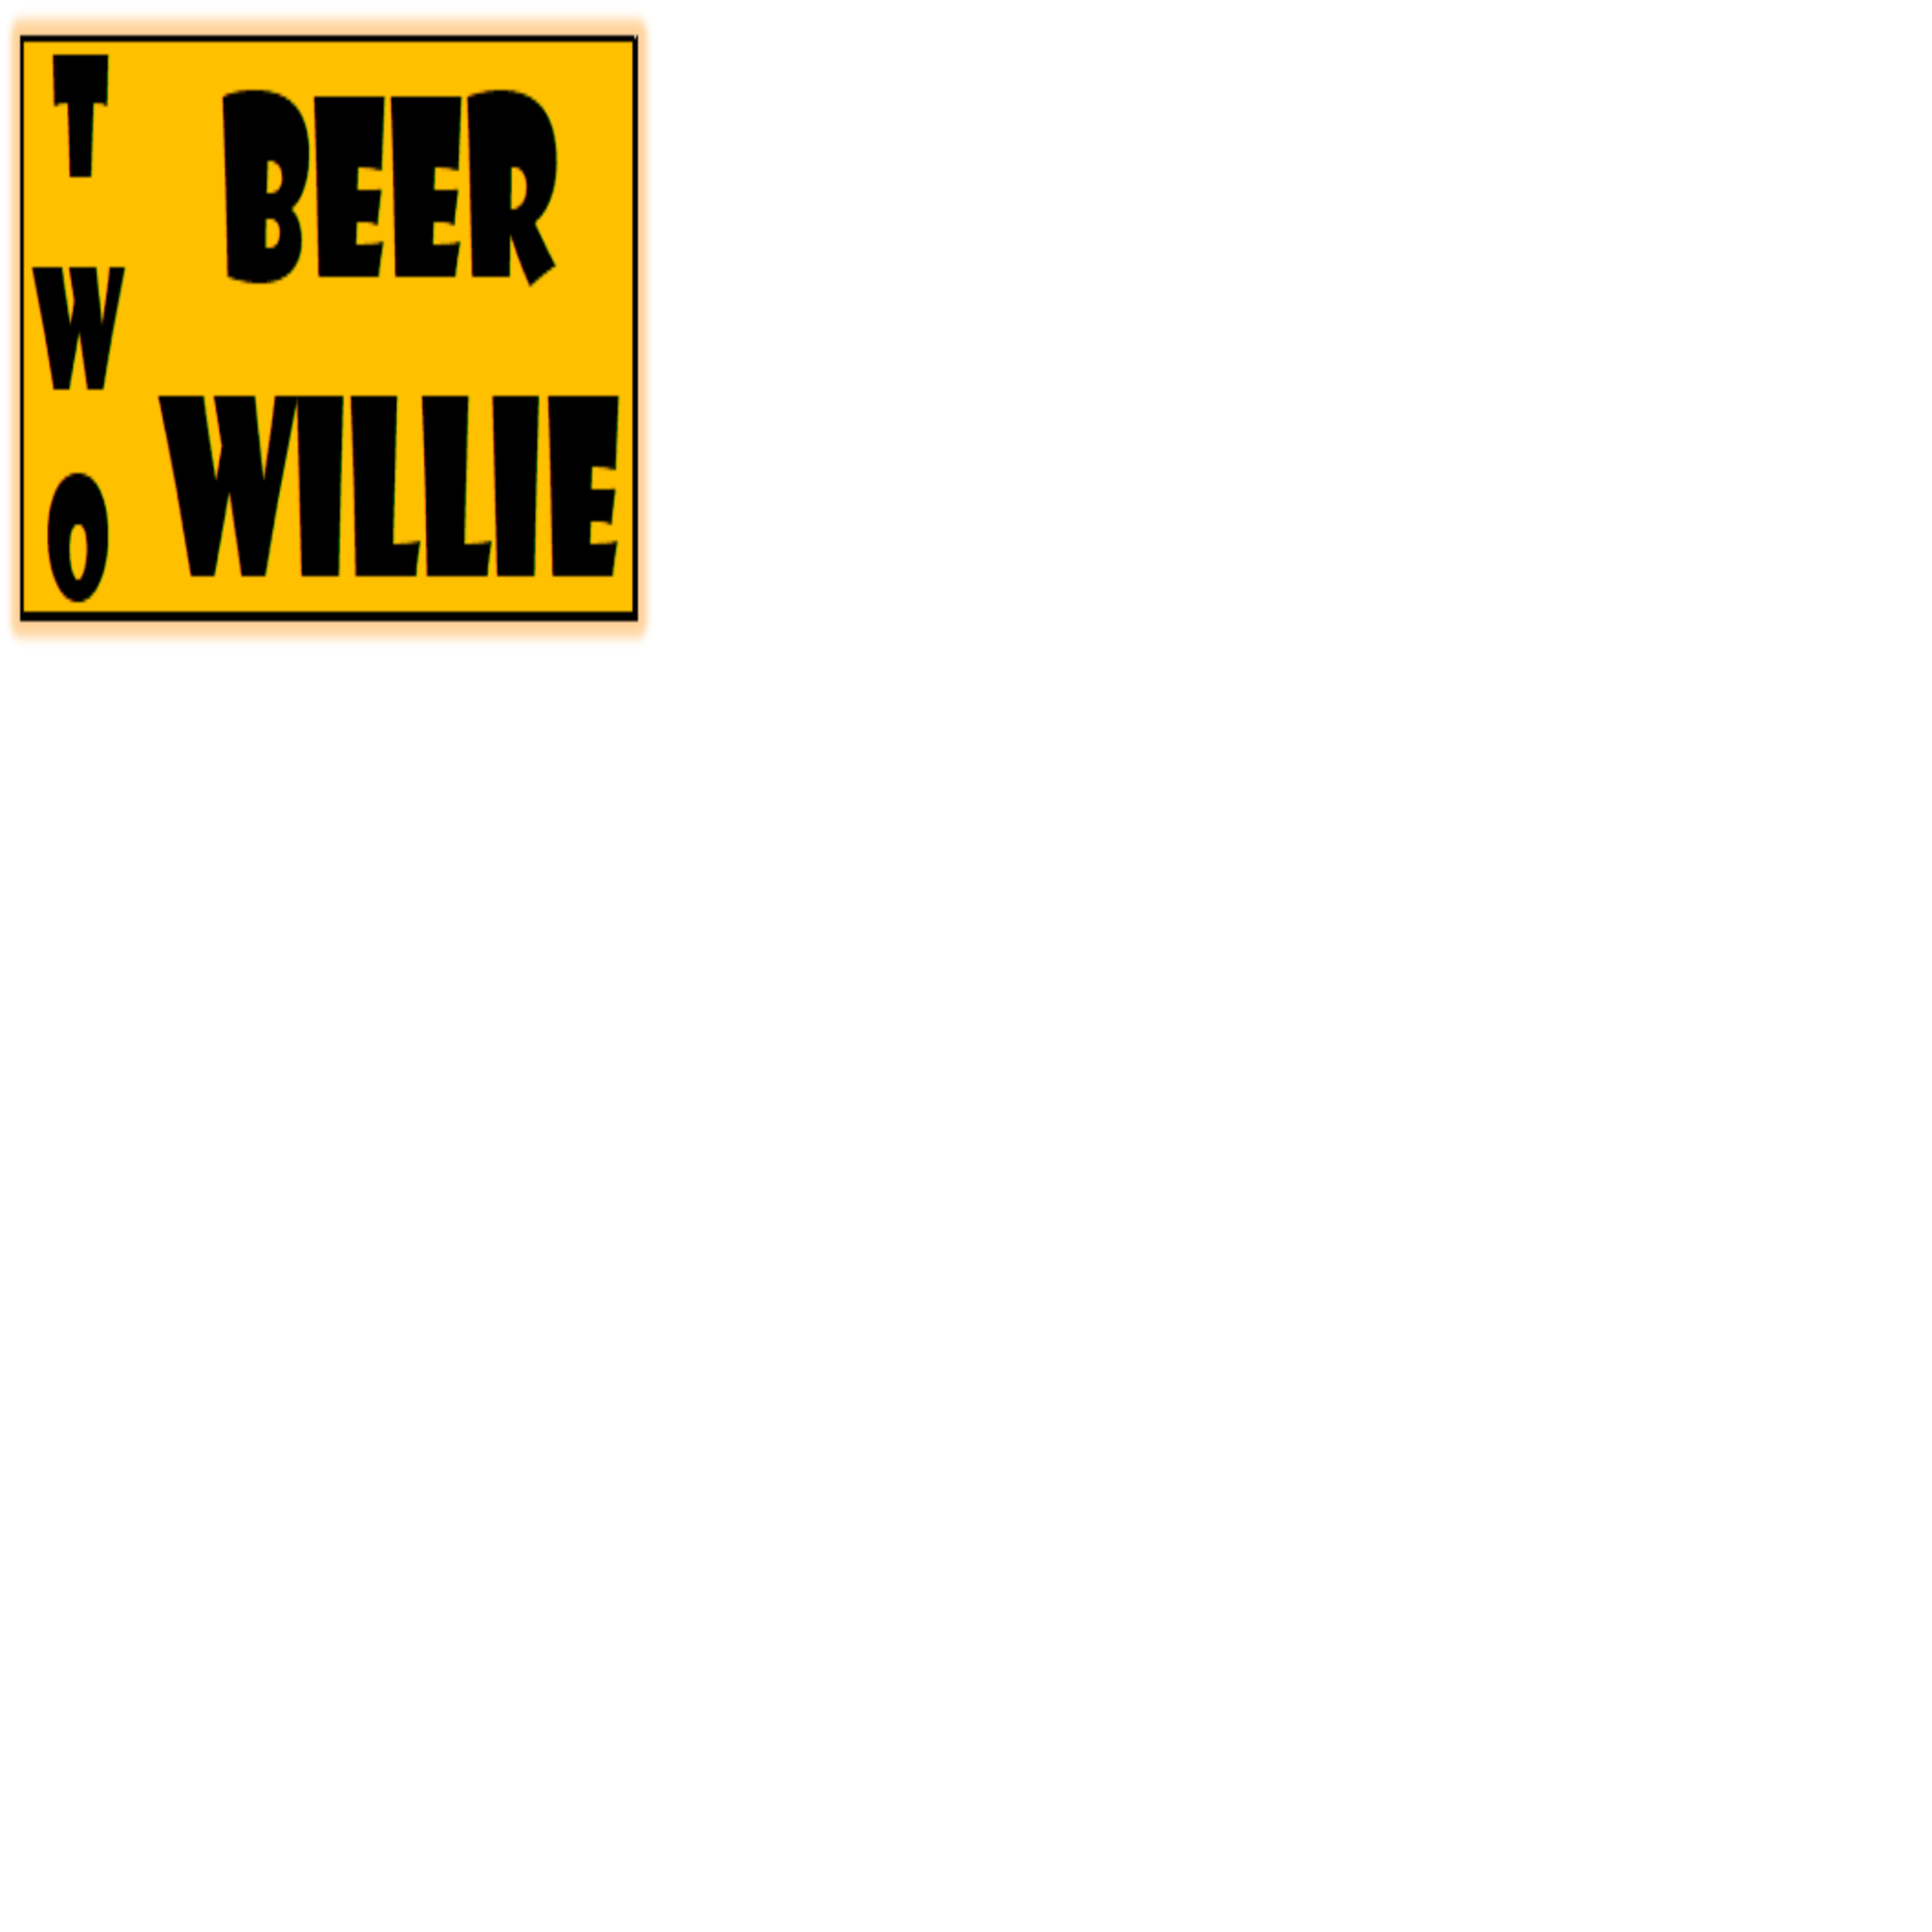 Two Beer Willie